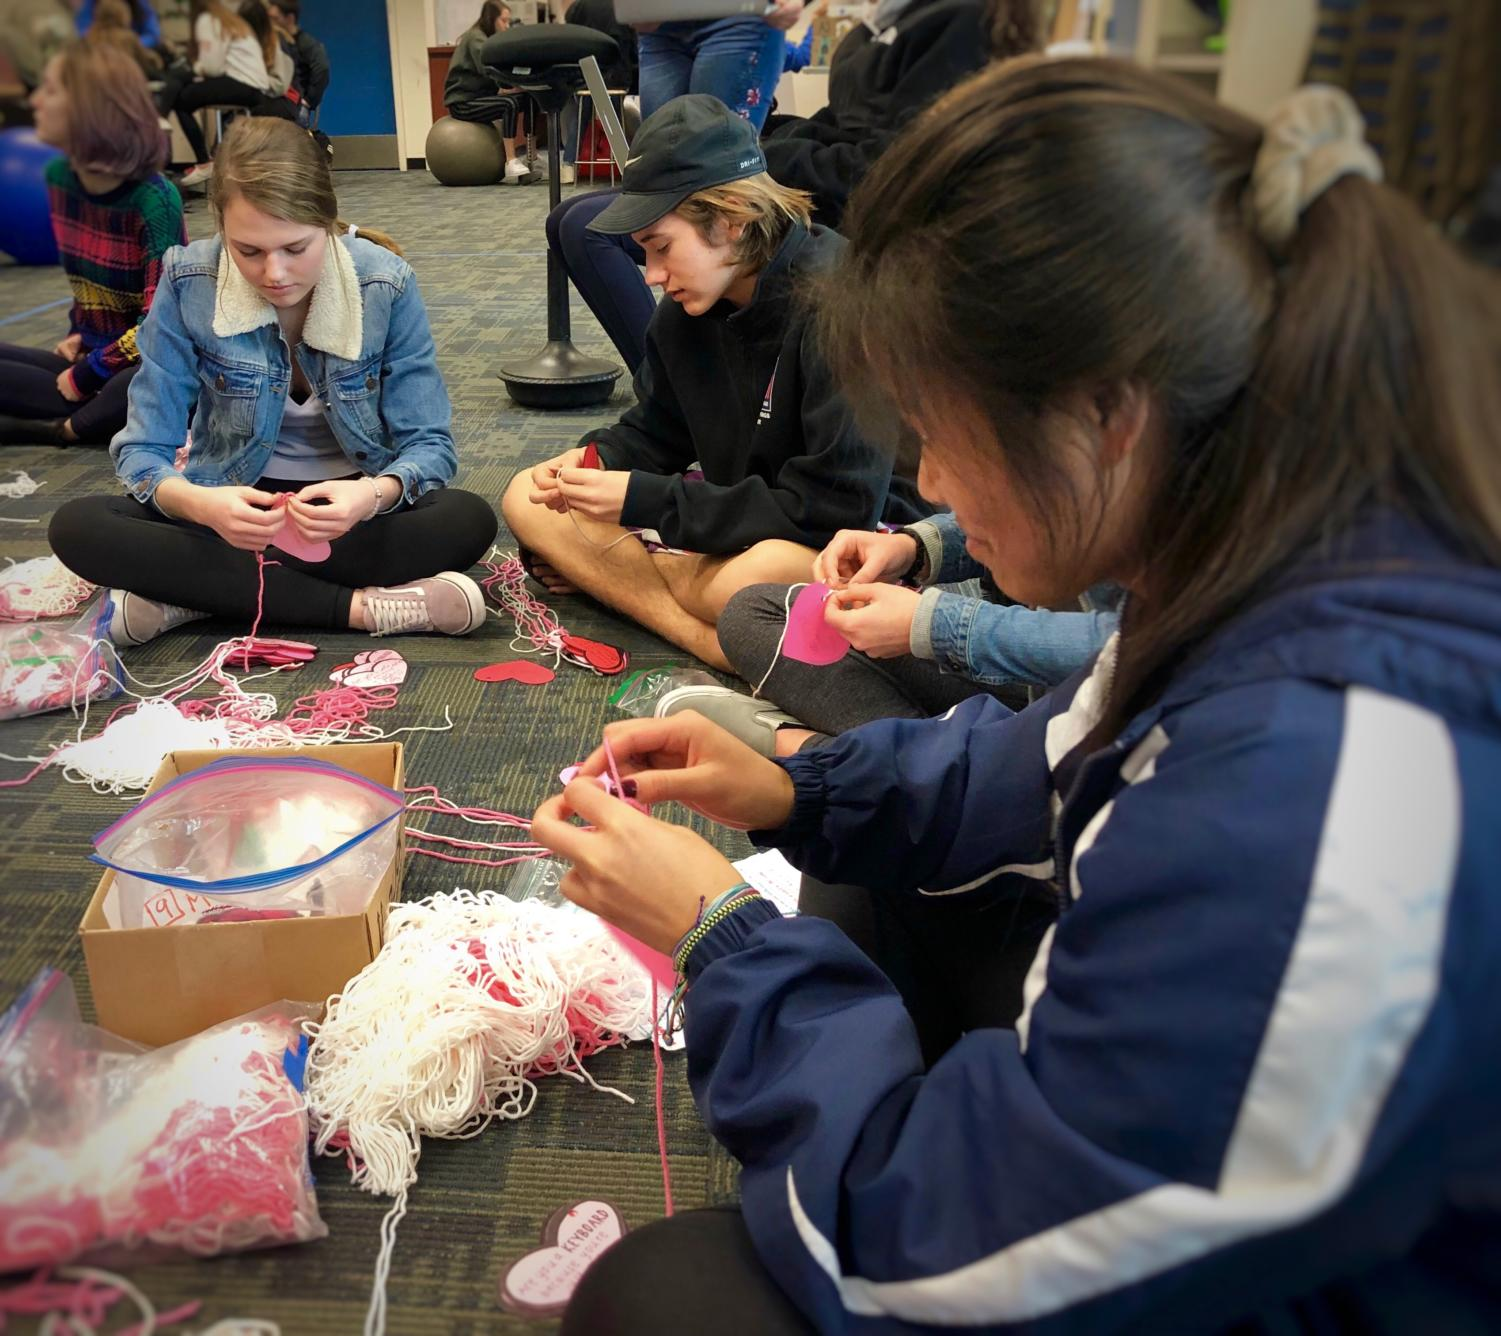 ASB's recognition committee works together to make Carlmont's annual Valentine's Day personalized heart decorations.